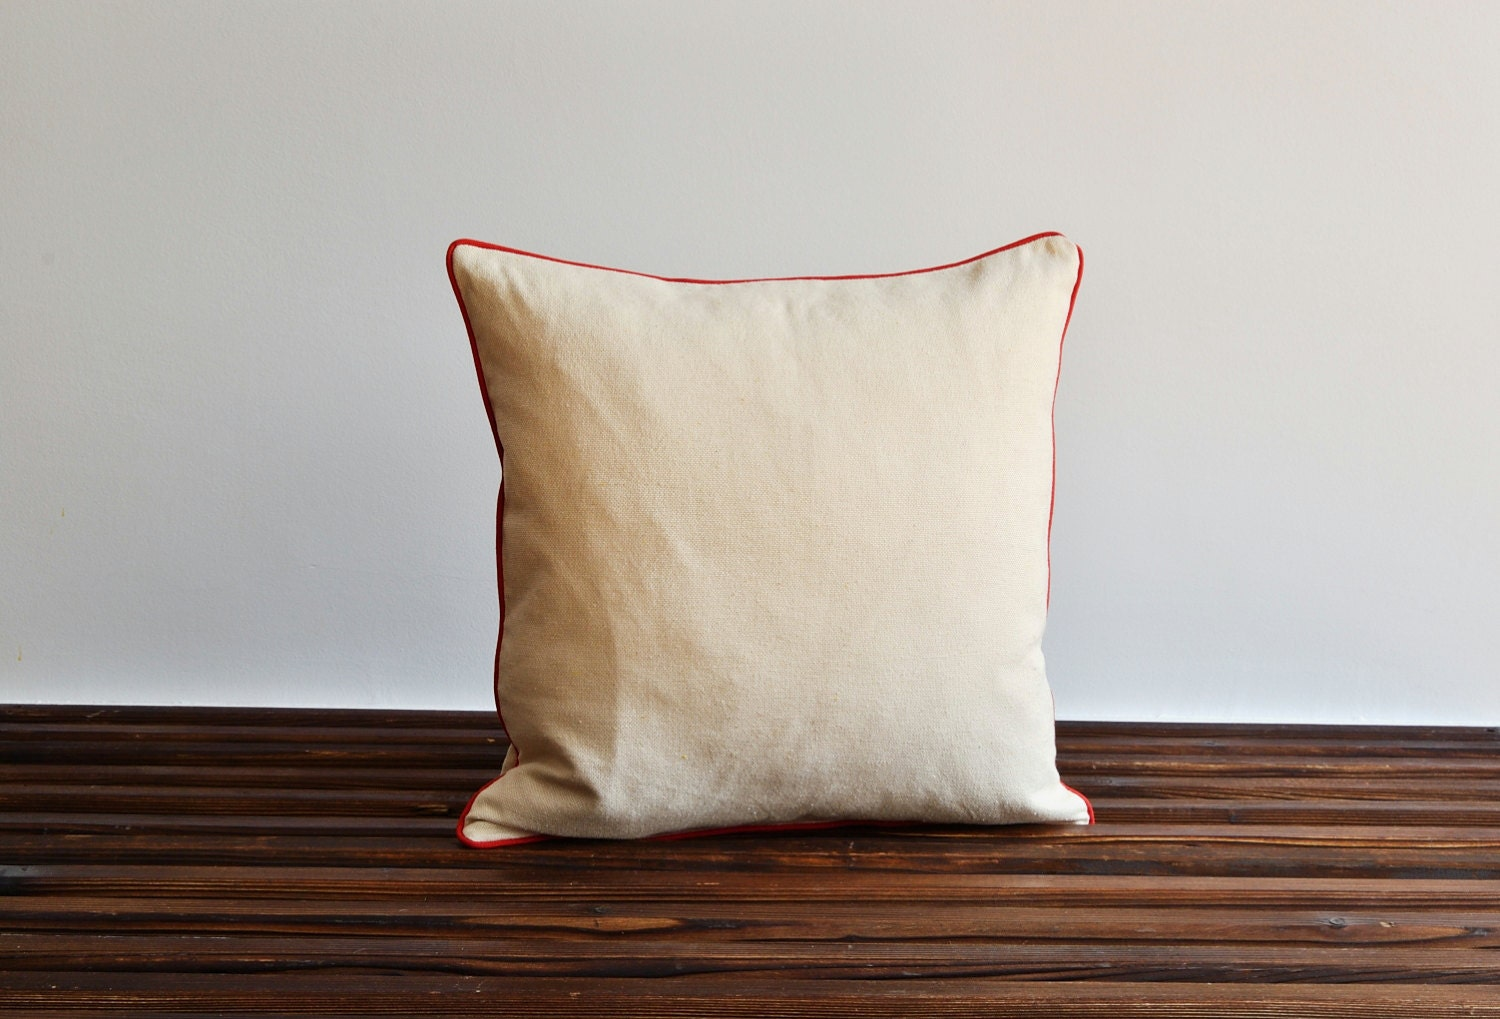 How To Make A Decorative Pillow With Piping : Pillow With Piping Modern Indoor Outdoor Decorative by pillowme